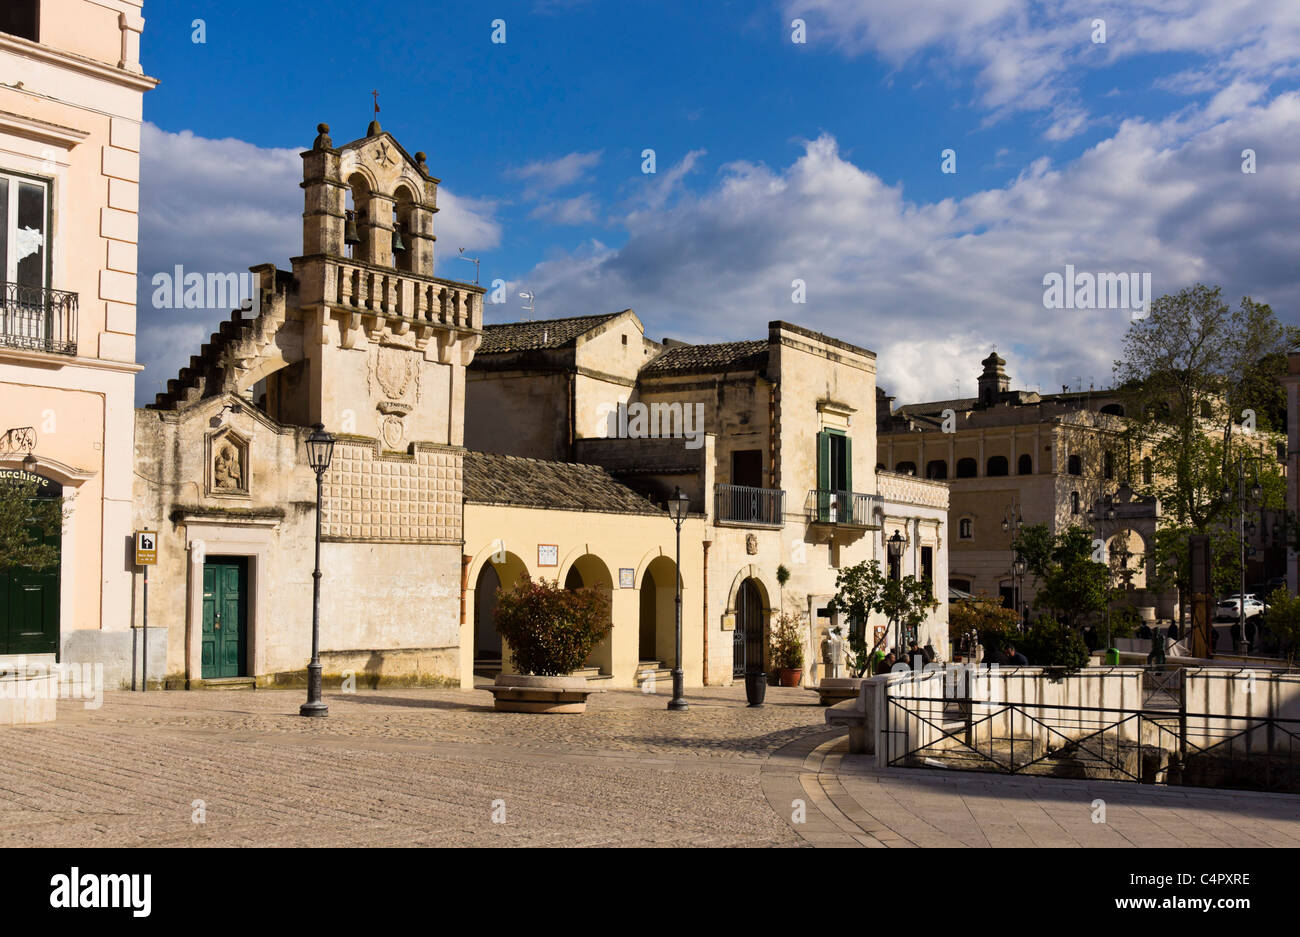 Domini stock photos domini stock images alamy for Piazza vittorio veneto matera